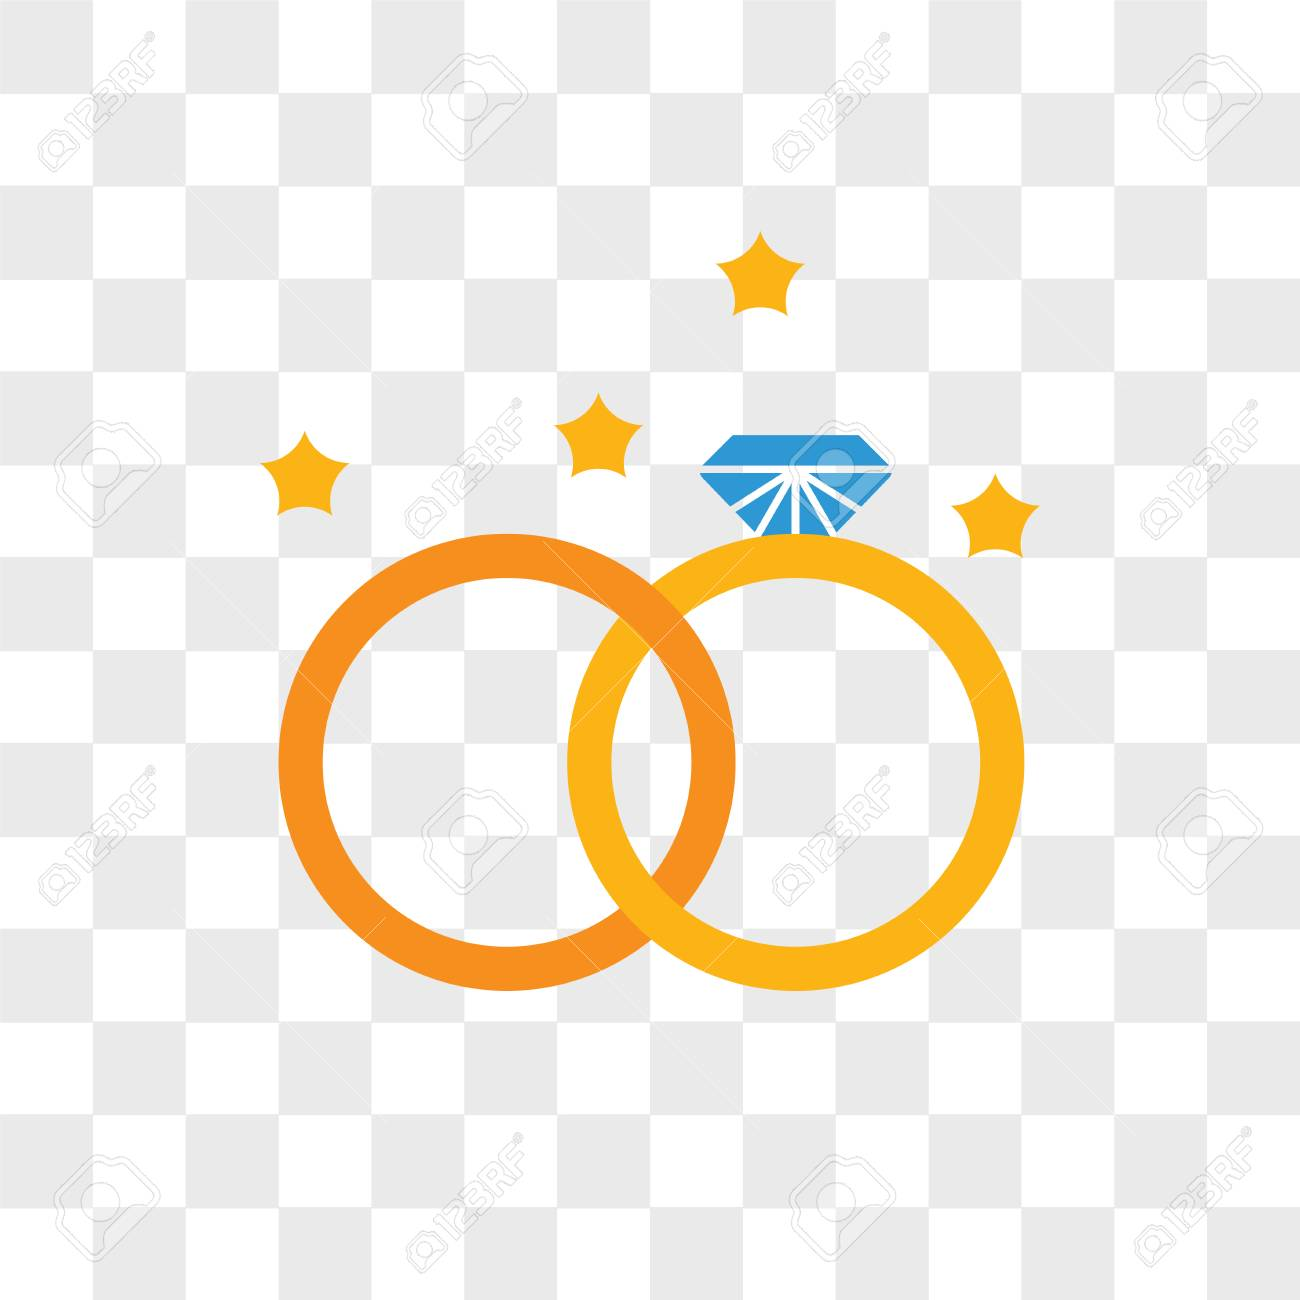 wedding rings vector icon isolated on transparent background royalty free cliparts vectors and stock illustration image 106770034 wedding rings vector icon isolated on transparent background